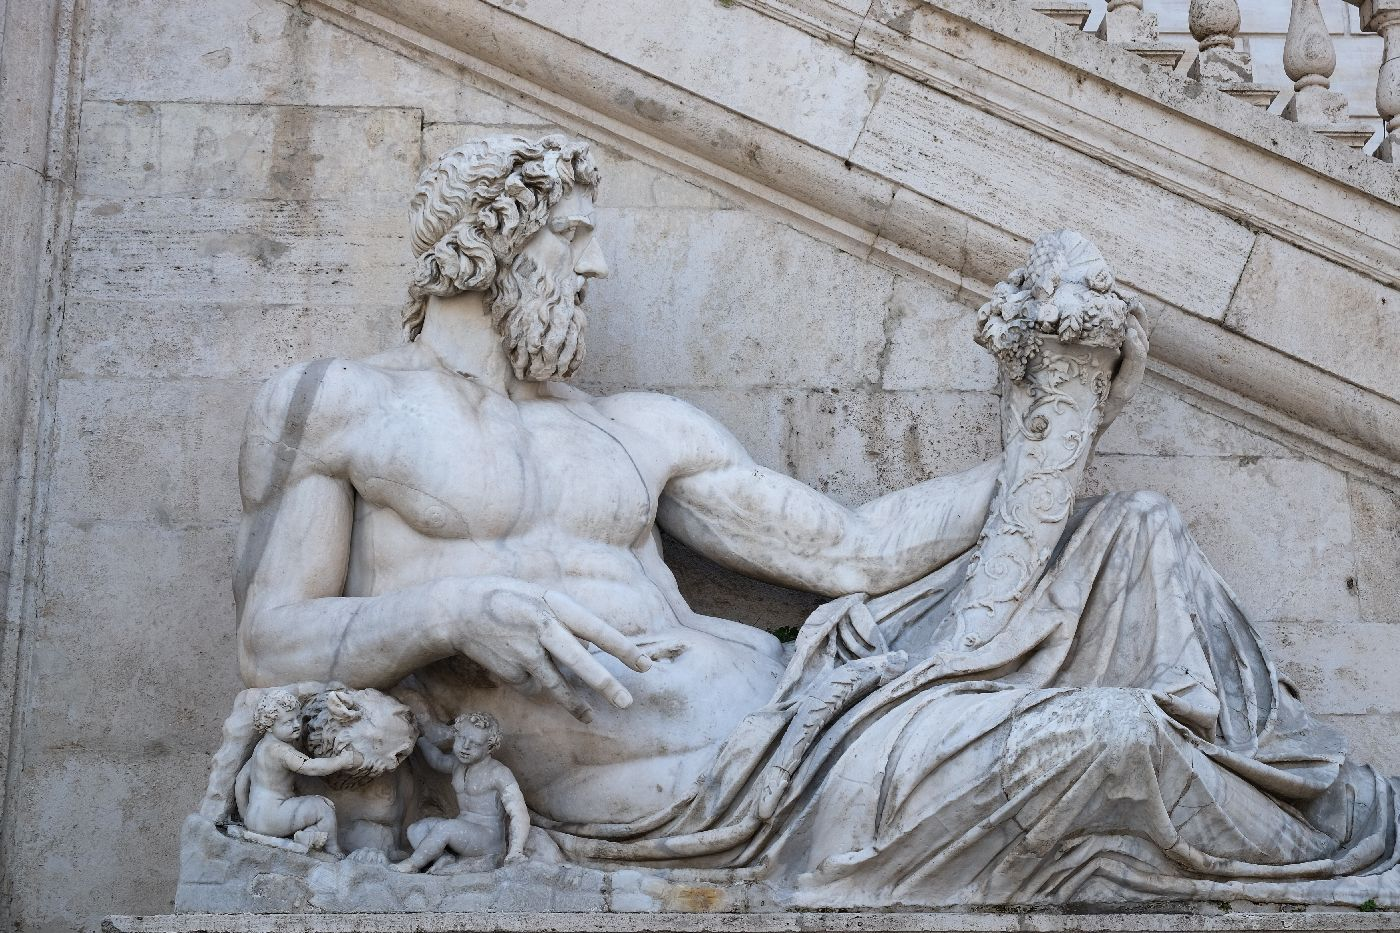 Ancient marble statue in Rome, Italy of Romulus and Remus being protected by Roman God